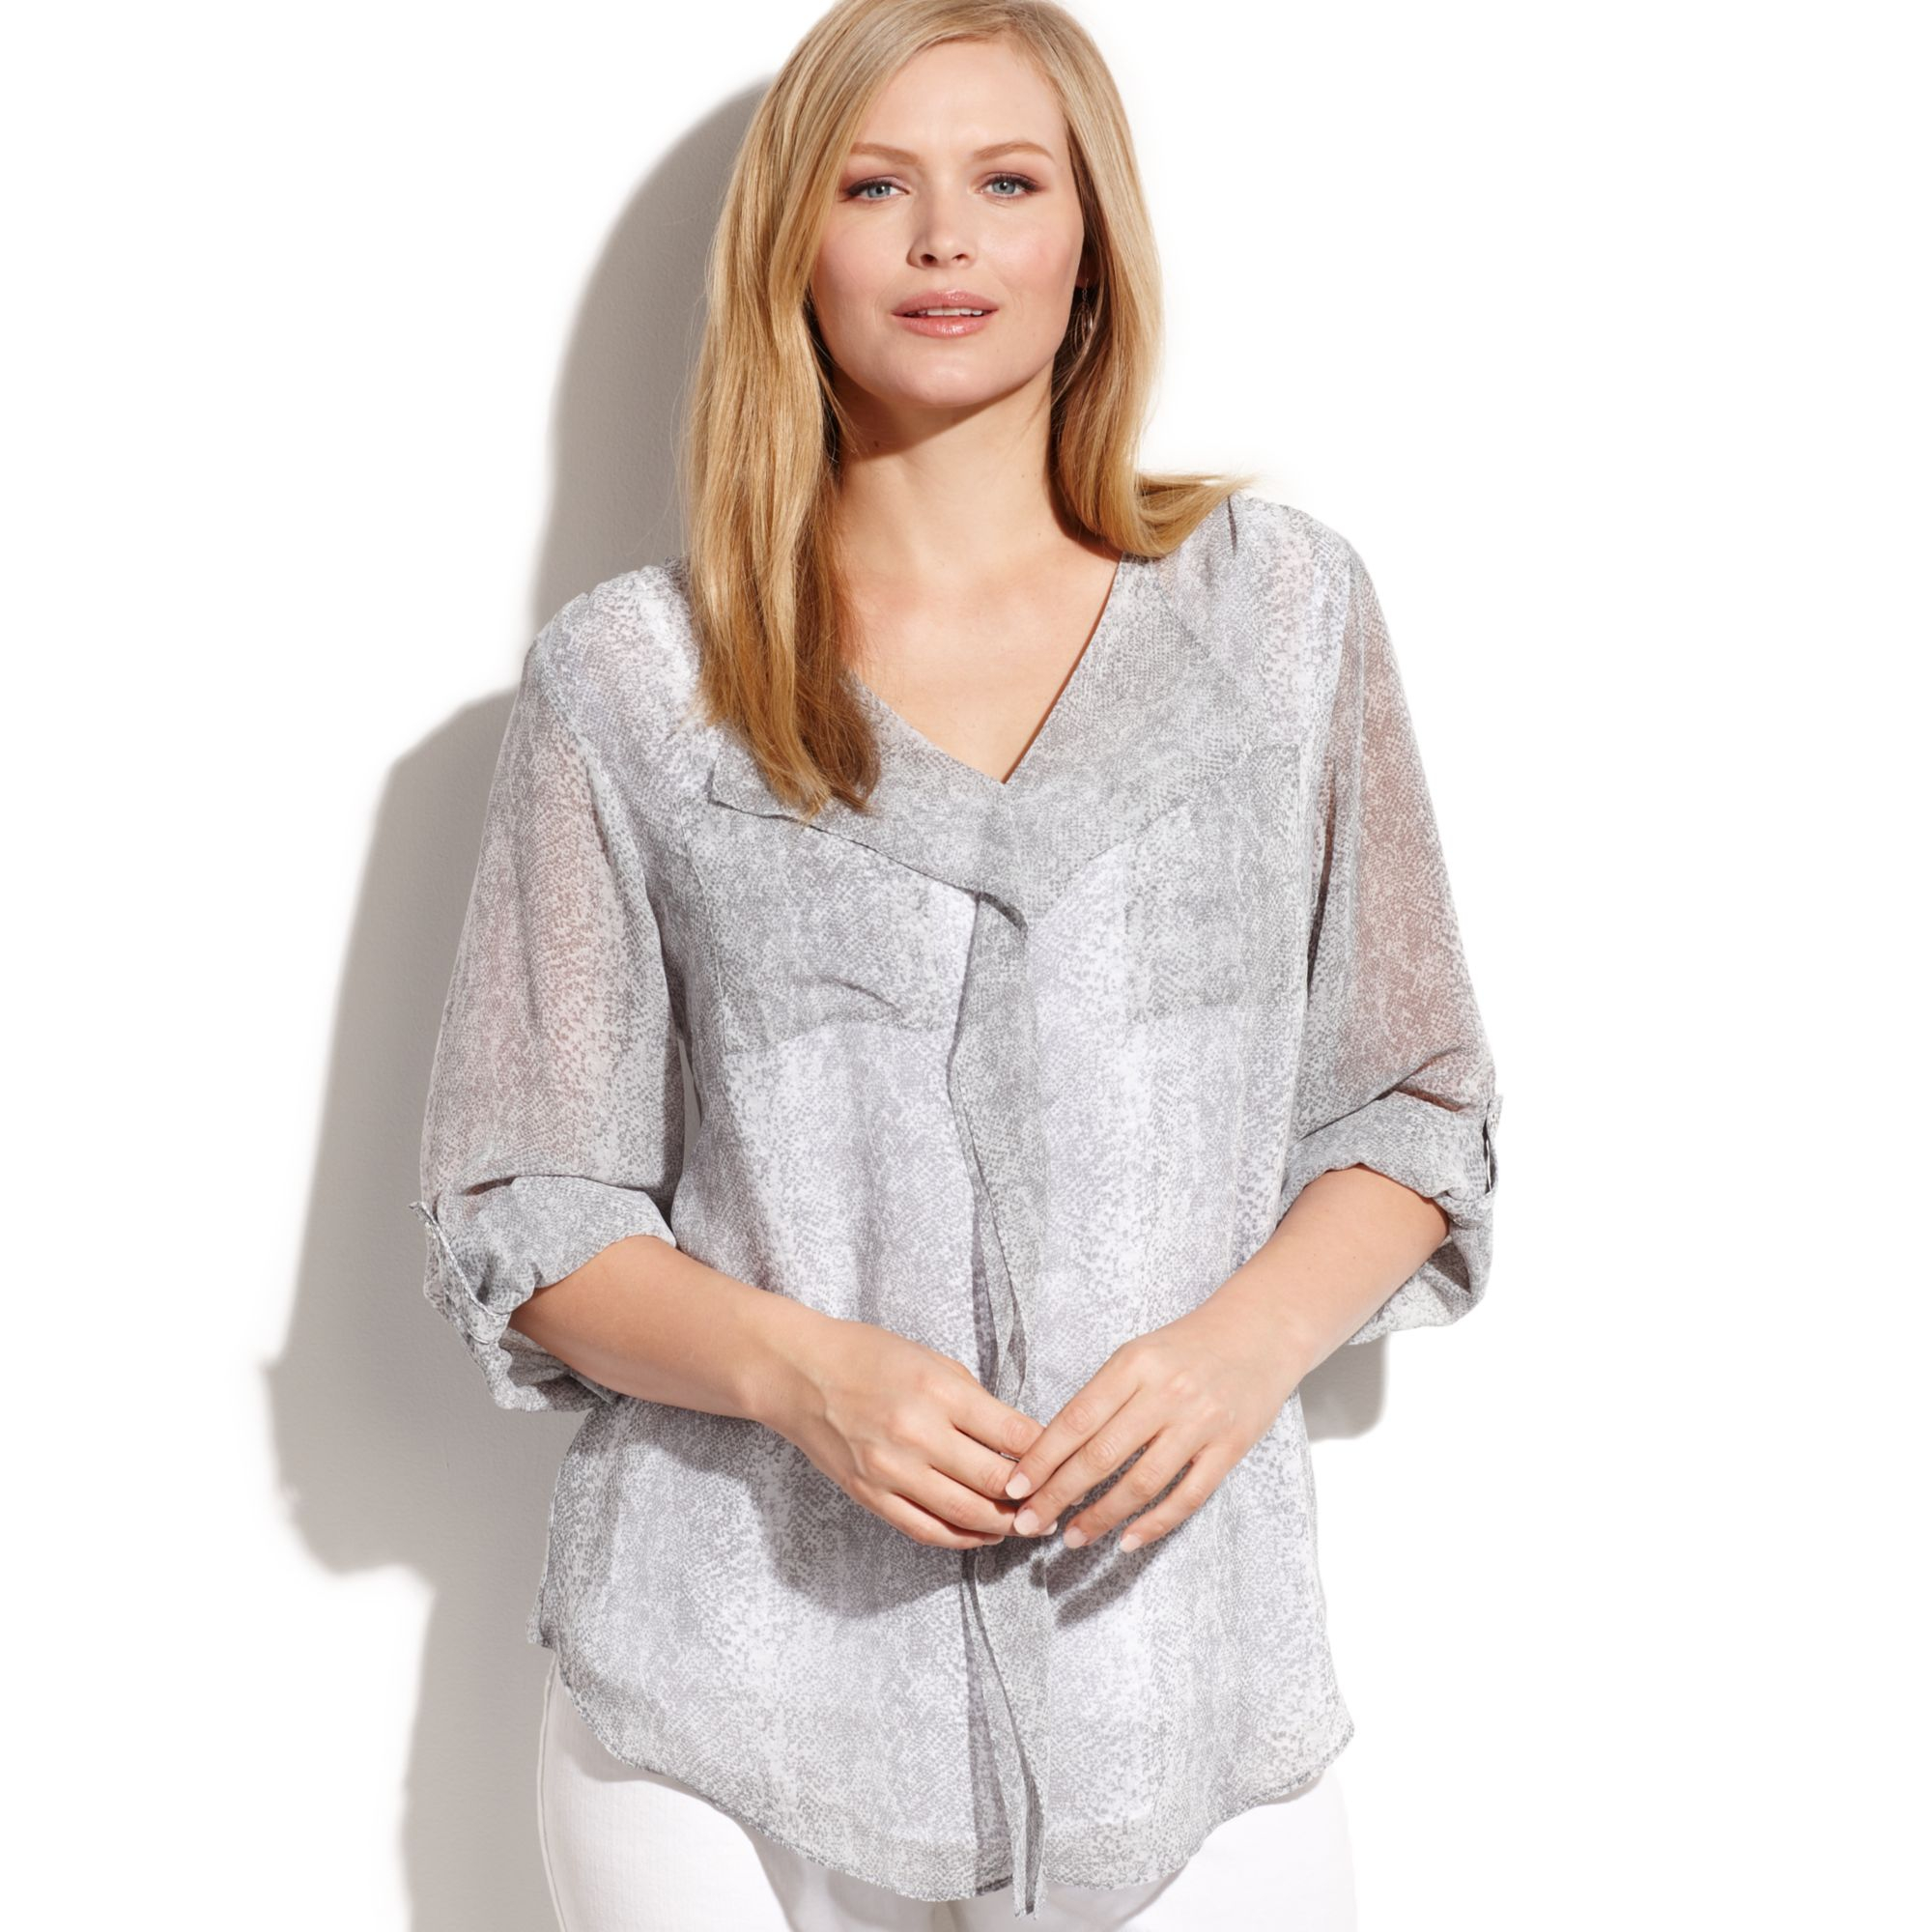 Vince Camuto Blouses